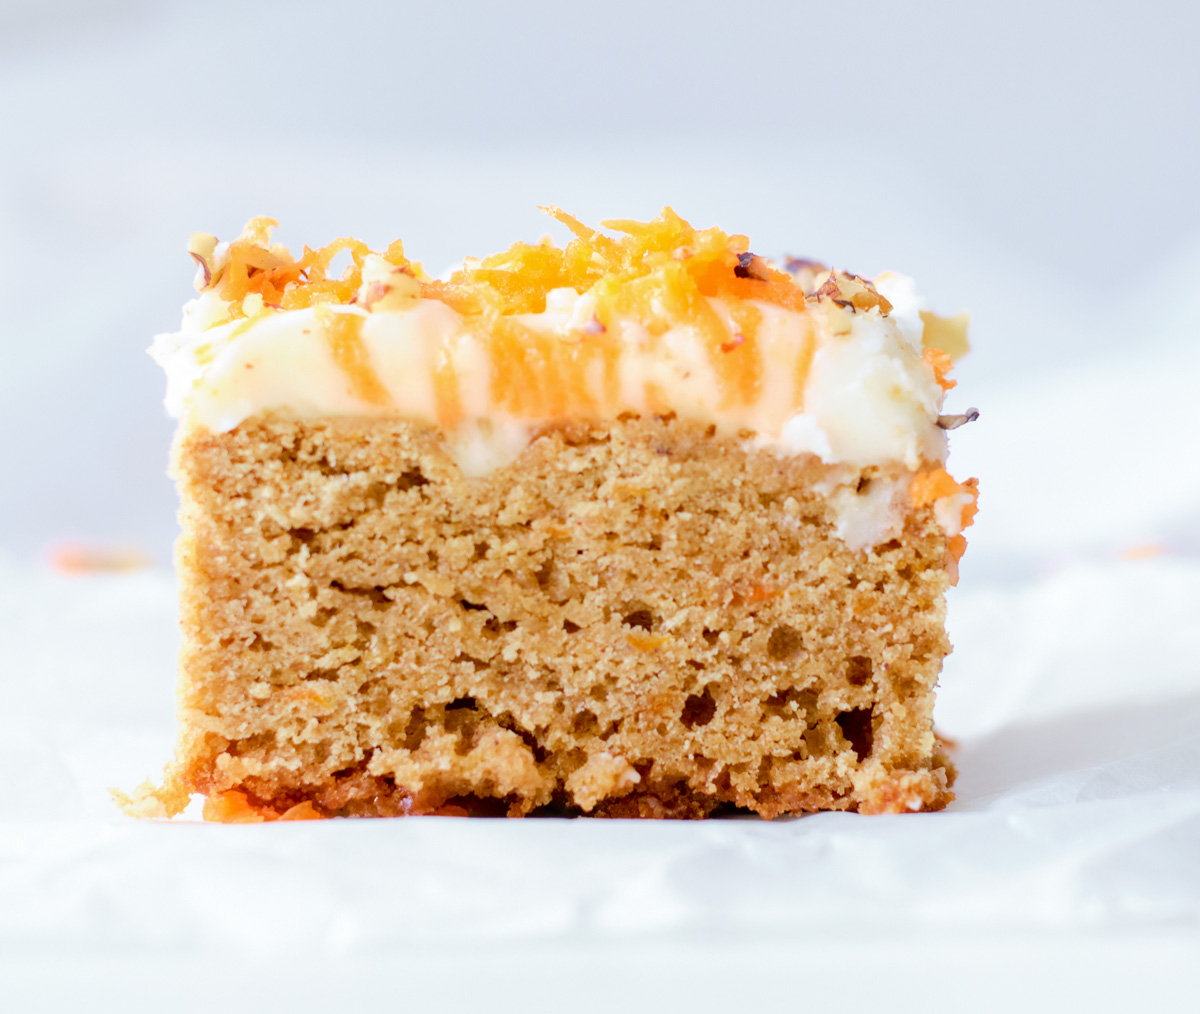 carrot cake blond square side view